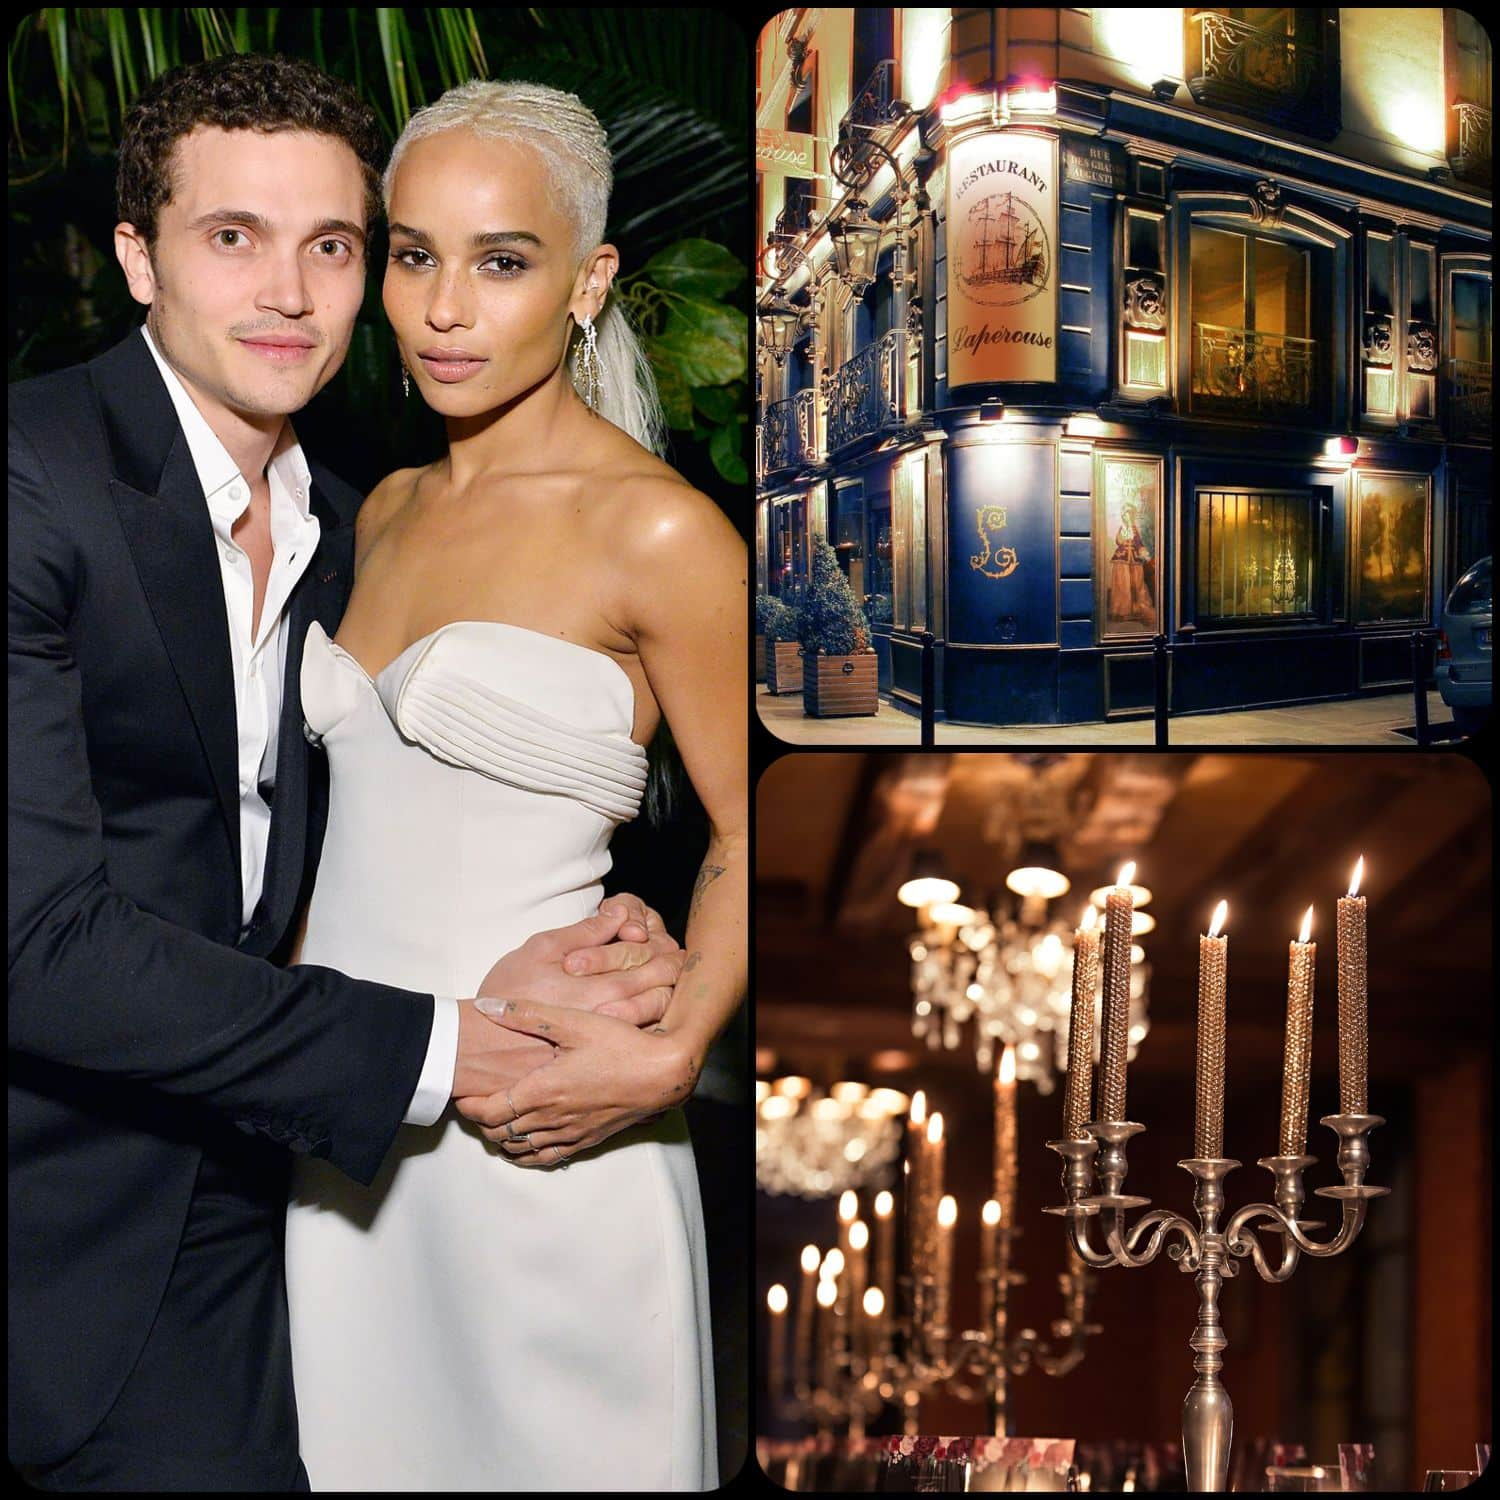 Zoe Kravitz and Karl Glusman married in Paris by RUNWAY MAGAZINE. Restaurant Laperouse June 28 2019